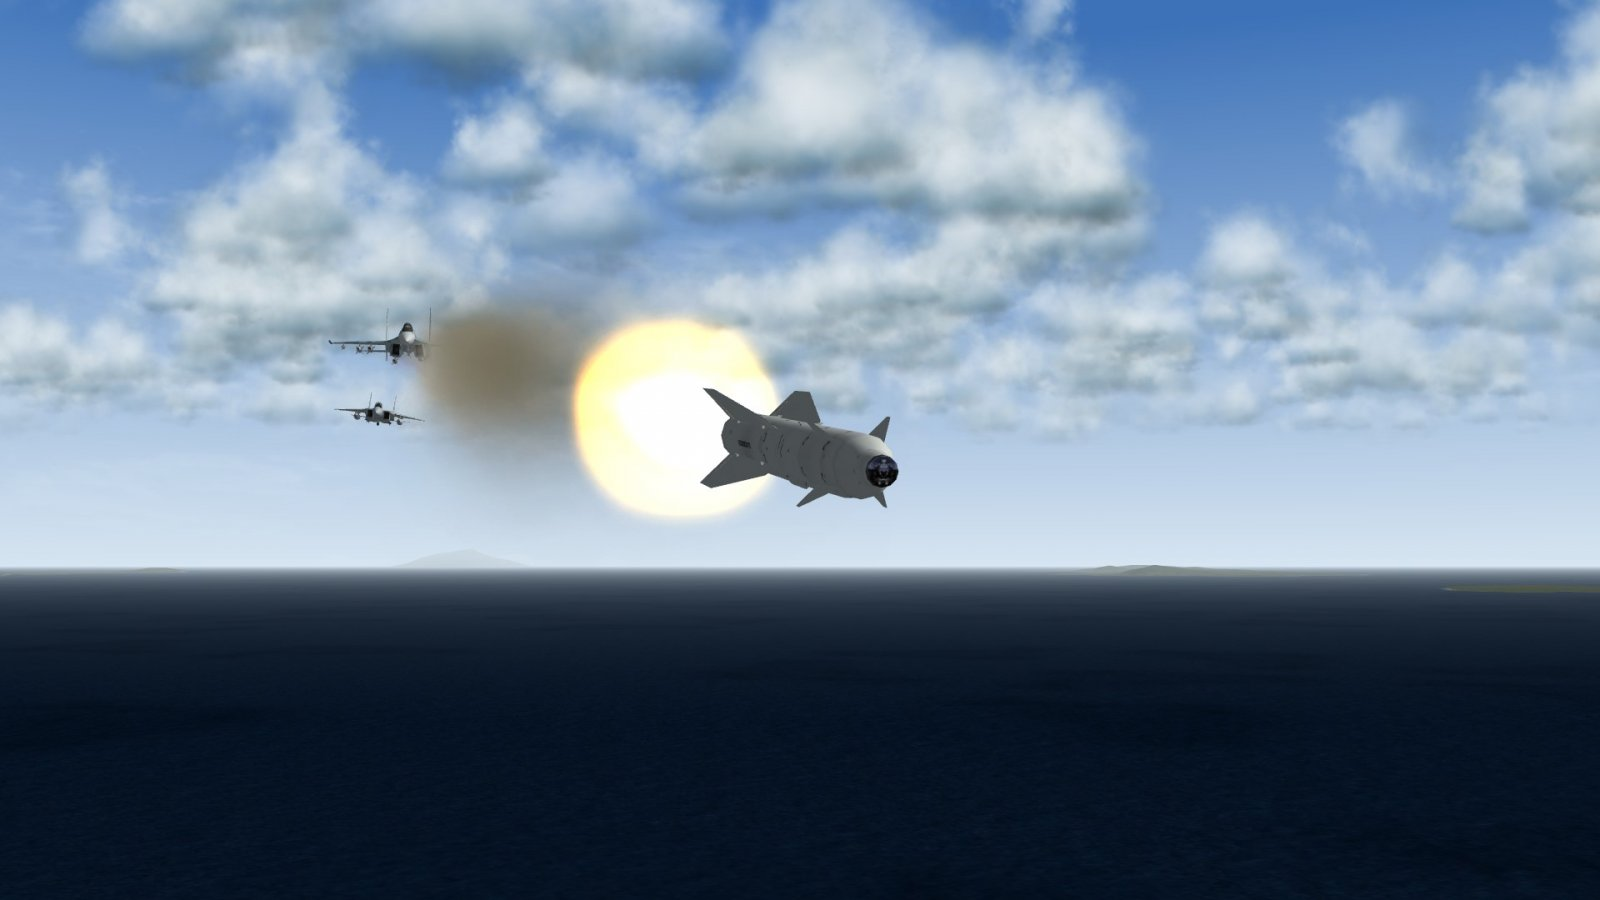 Kh-29TE Cooked Off From Su-30SM While A F-15J Lurks Behind